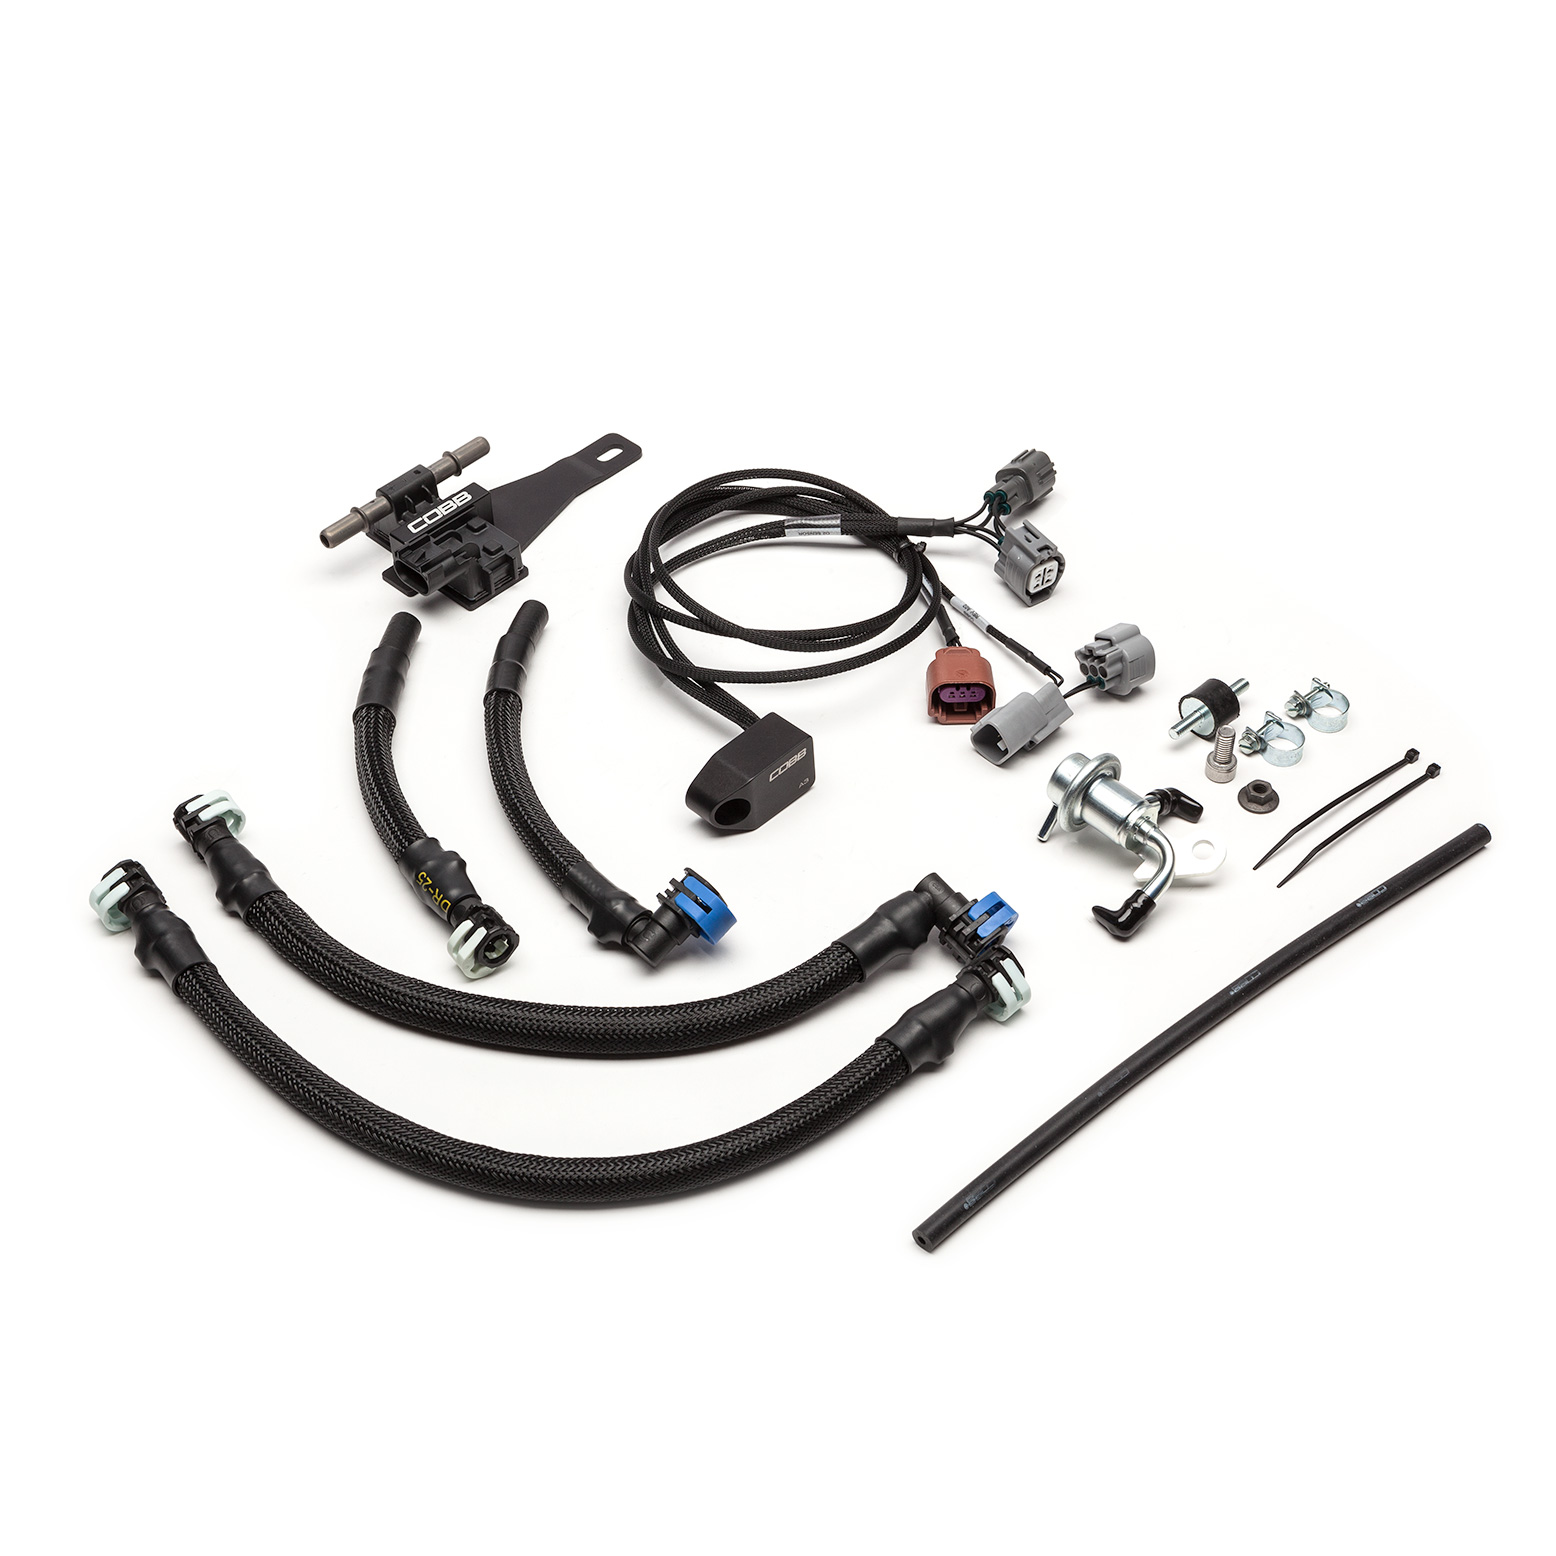 Subaru Flex Fuel Kit Legacy GT 2007-2009 (5 Pin)